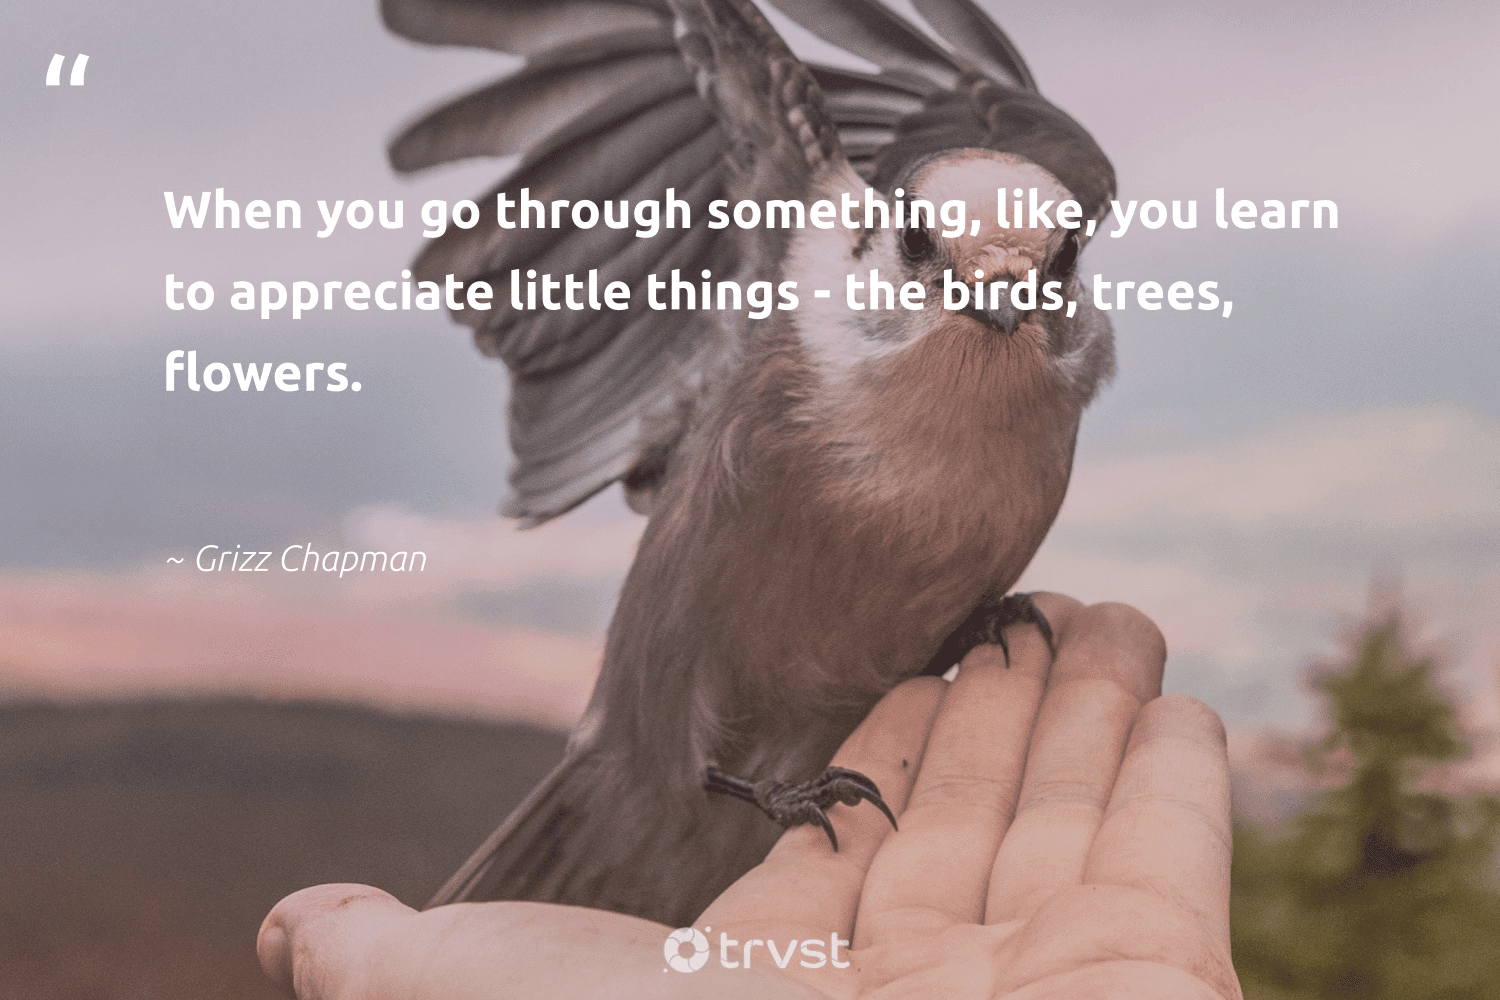 """""""When you go through something, like, you learn to appreciate little things - the birds, trees, flowers.""""  - Grizz Chapman #trvst #quotes #trees #flowers #birds #weplanttrees #savetheplanet #beinspired #rainforest #sustainability #socialchange #forest"""